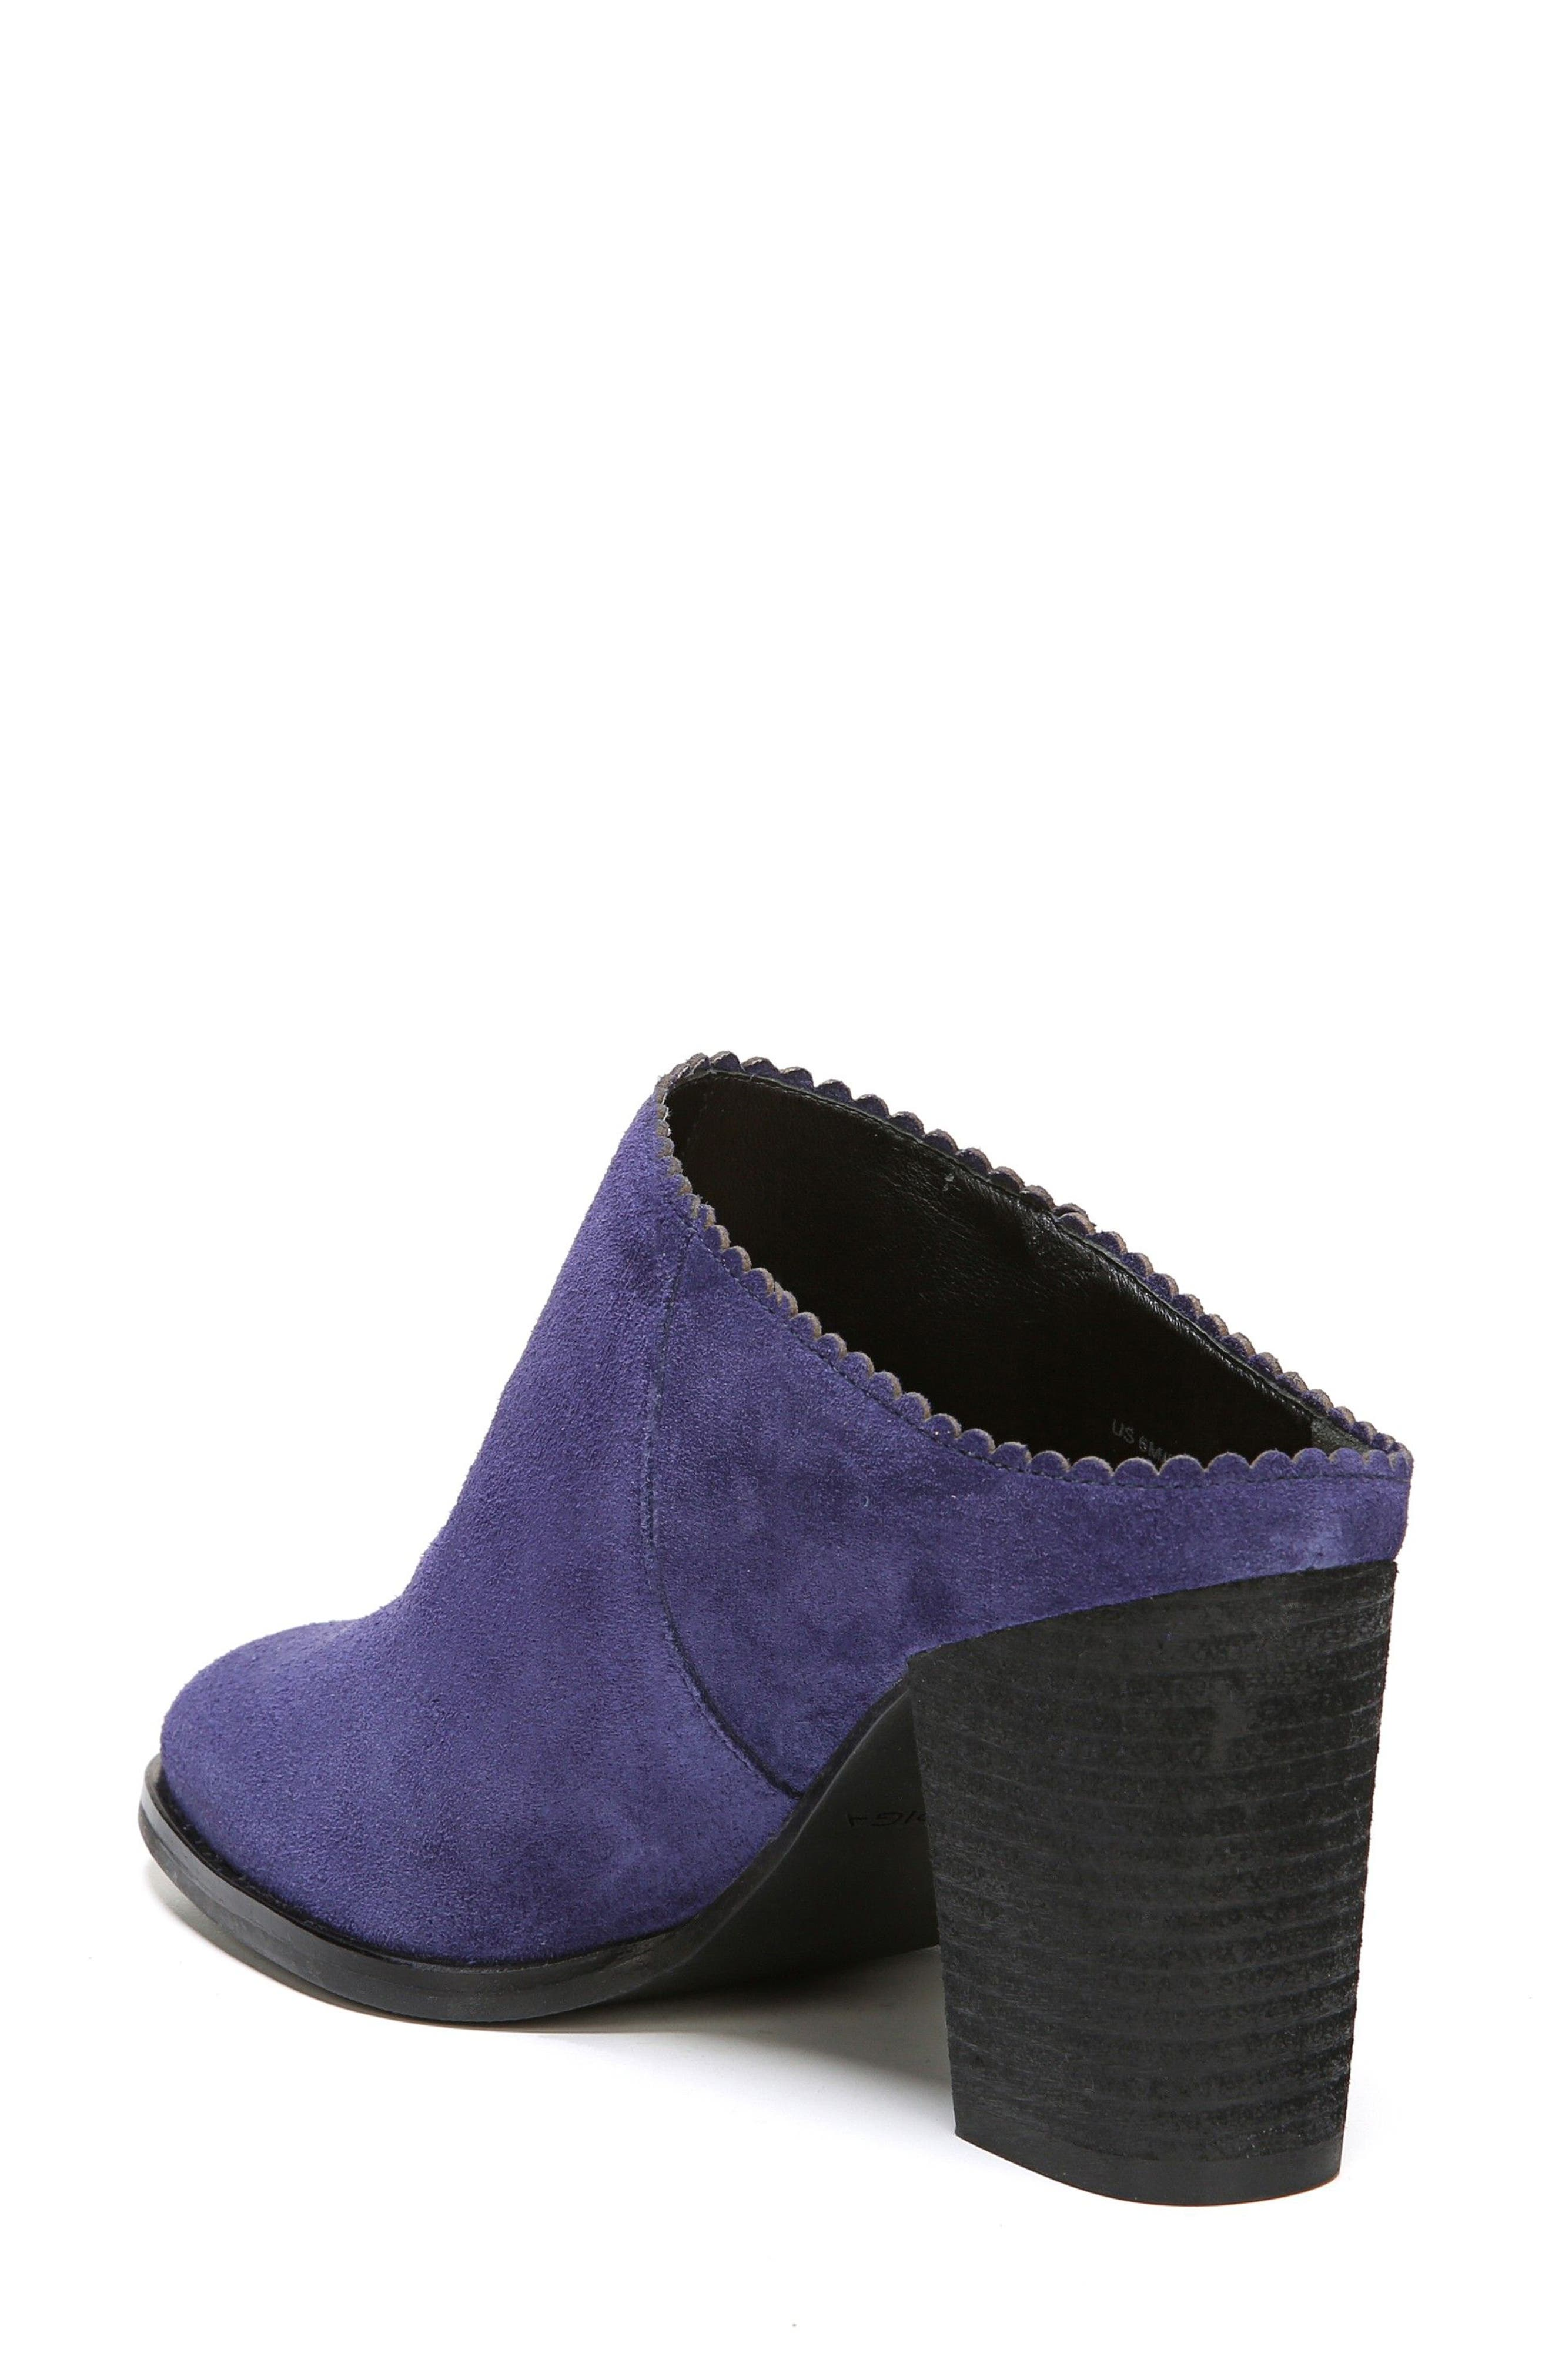 Alternate Image 2  - Via Spiga Sophia Block Heel Mule (Women)